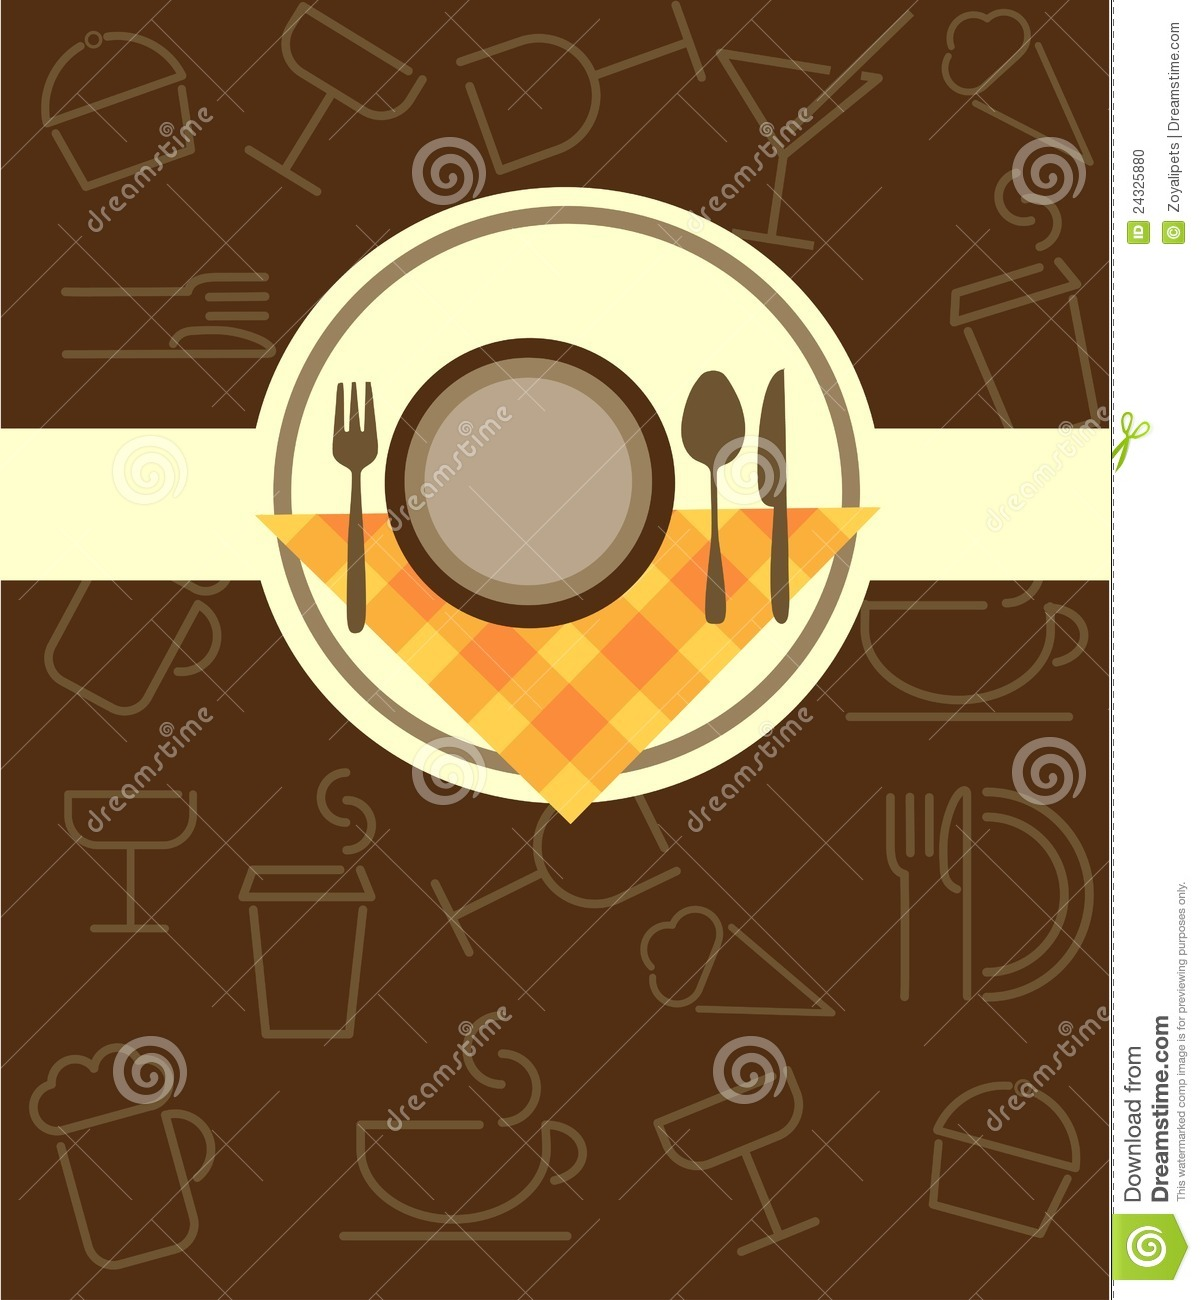 Menu Template For Restaurant Or Coffee Bar Stock Photo